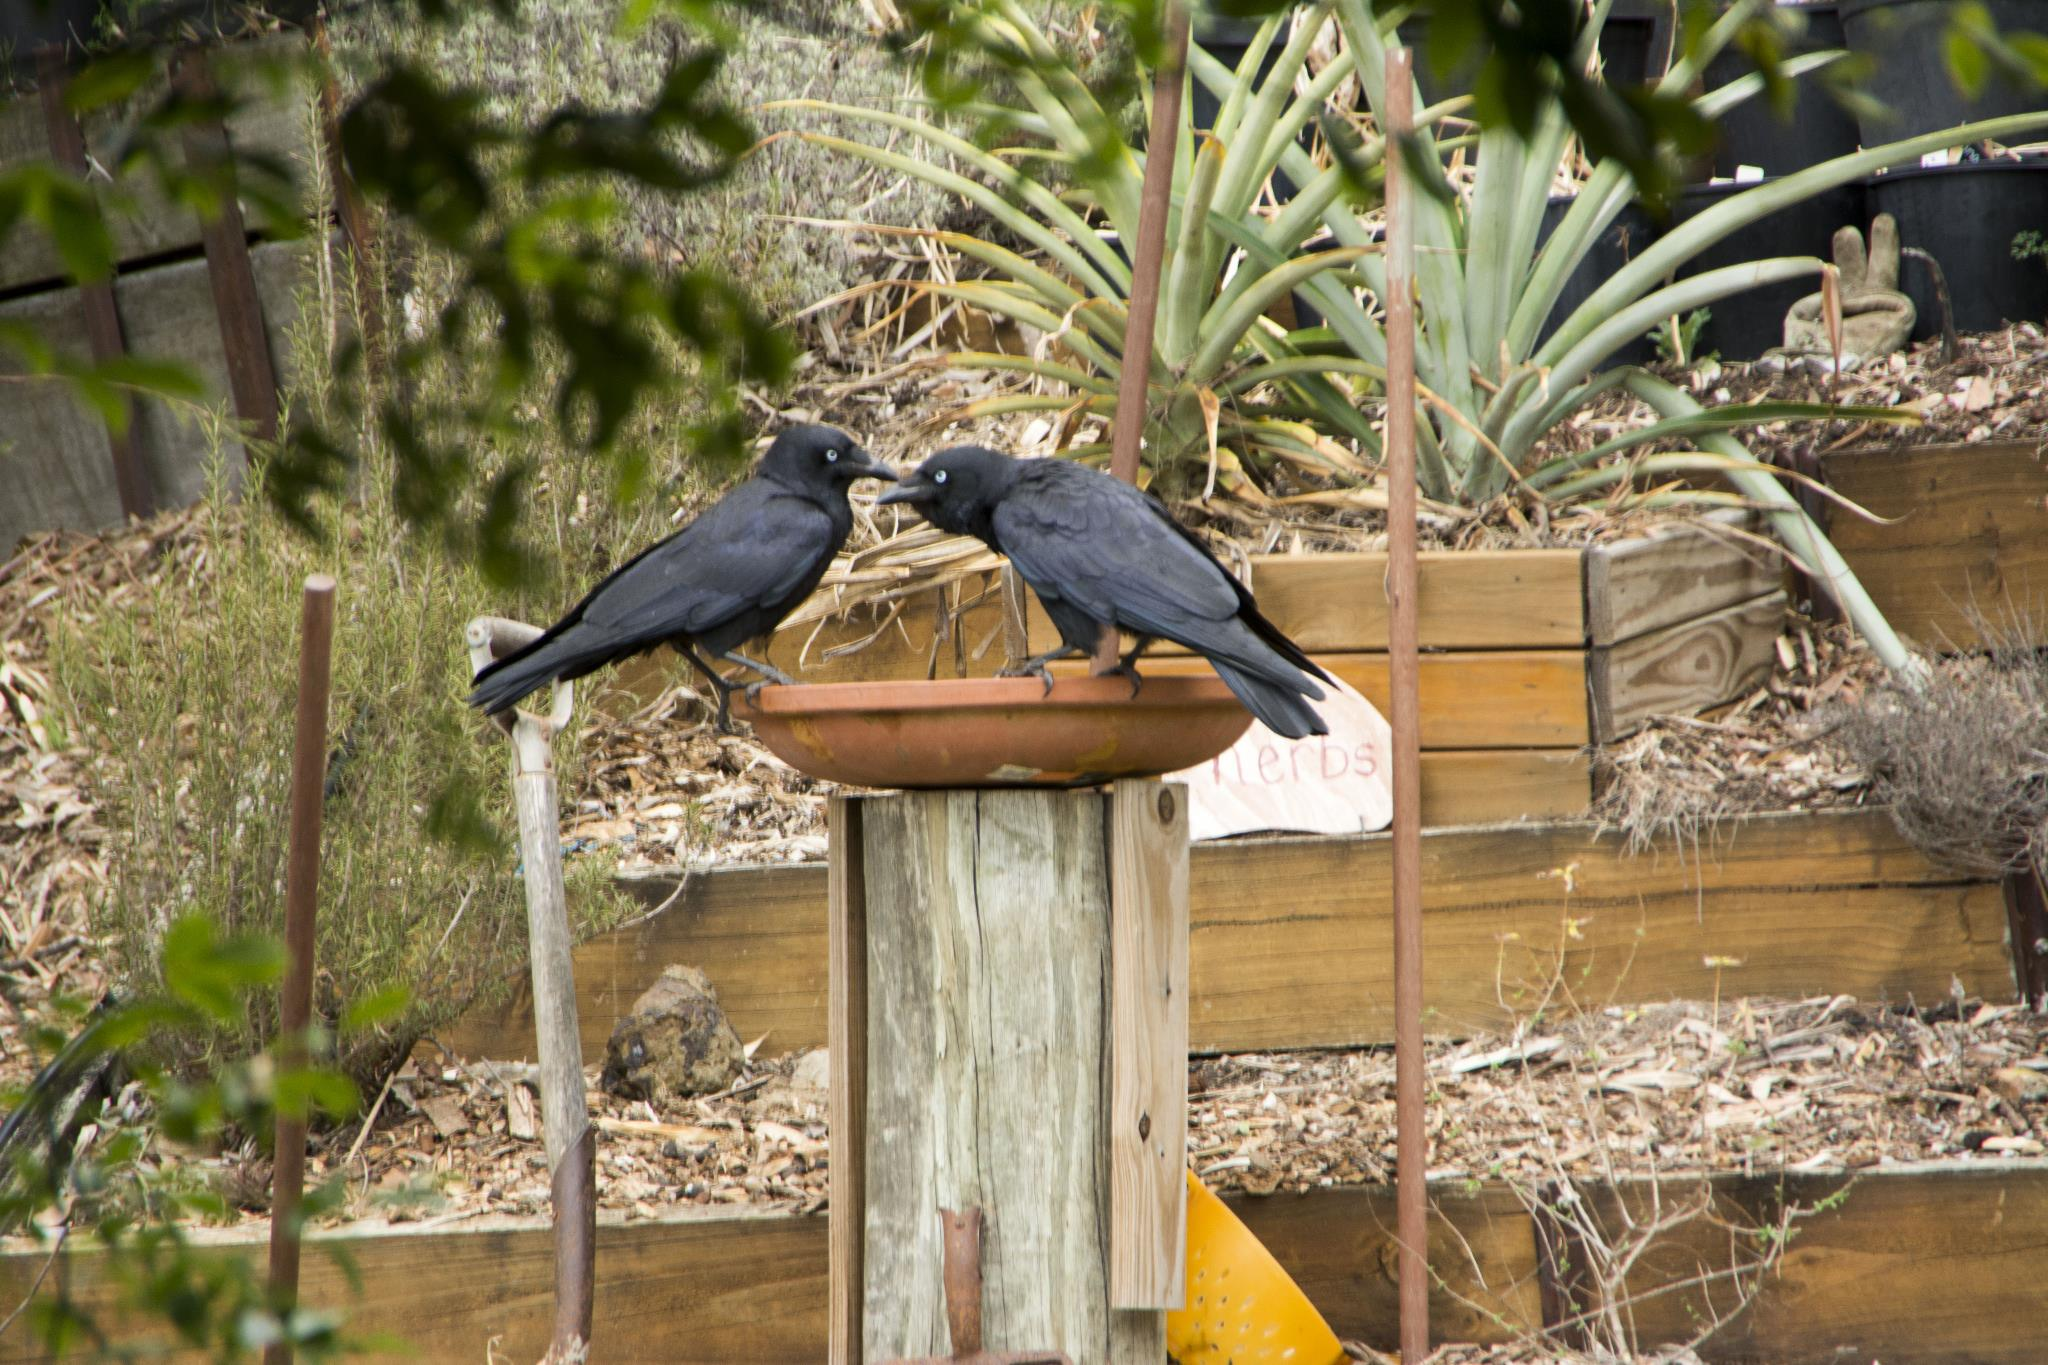 Buzz and Woody - Australian Ravens